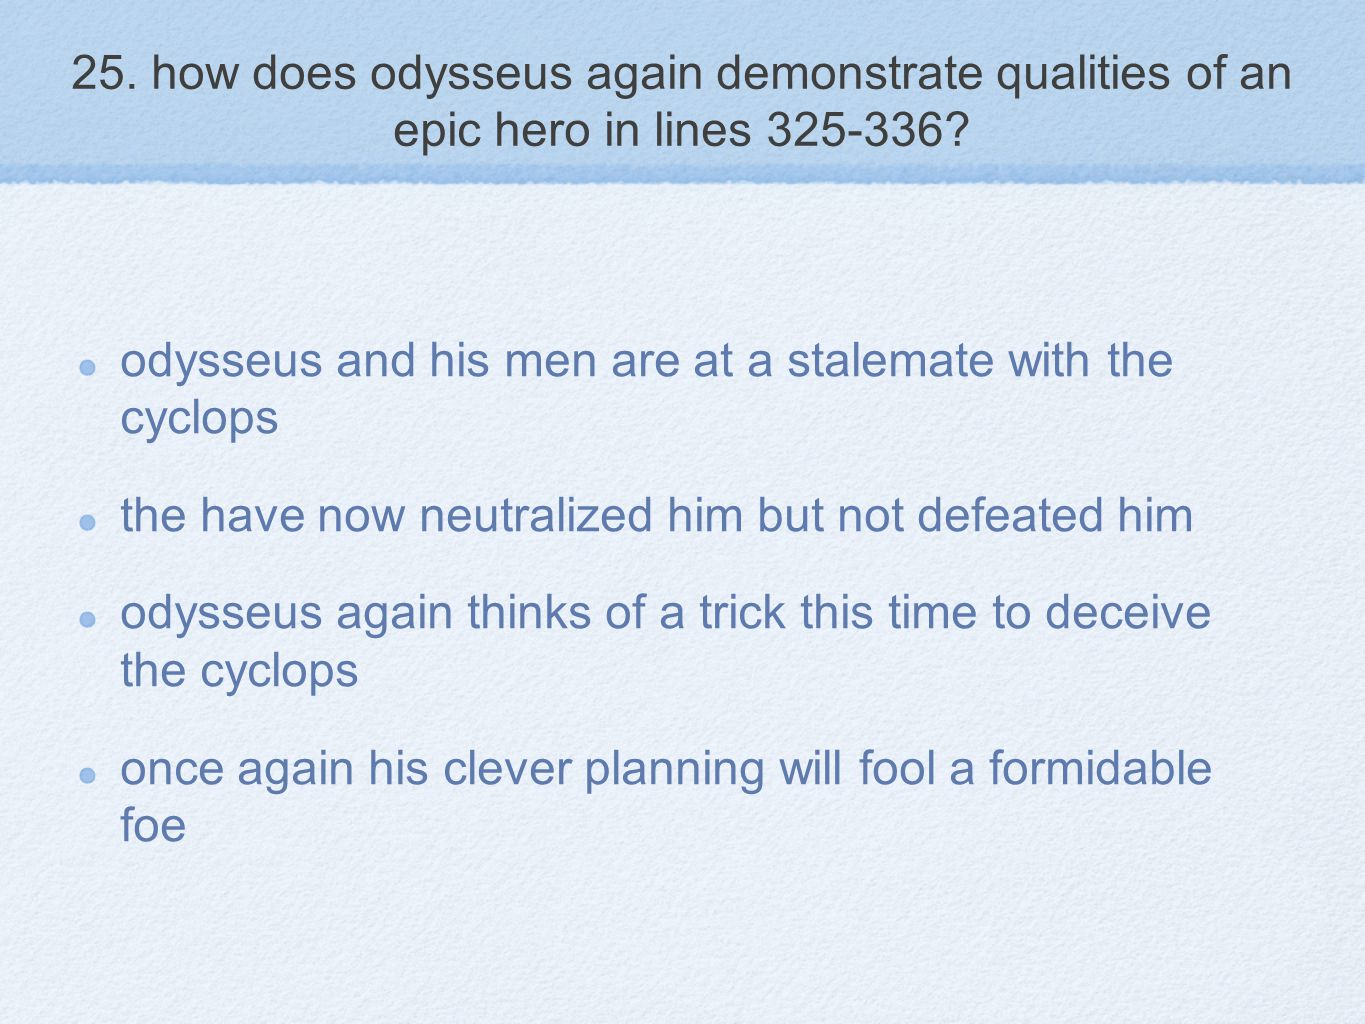 25. how does odysseus again demonstrate qualities of an epic hero in lines 325-336